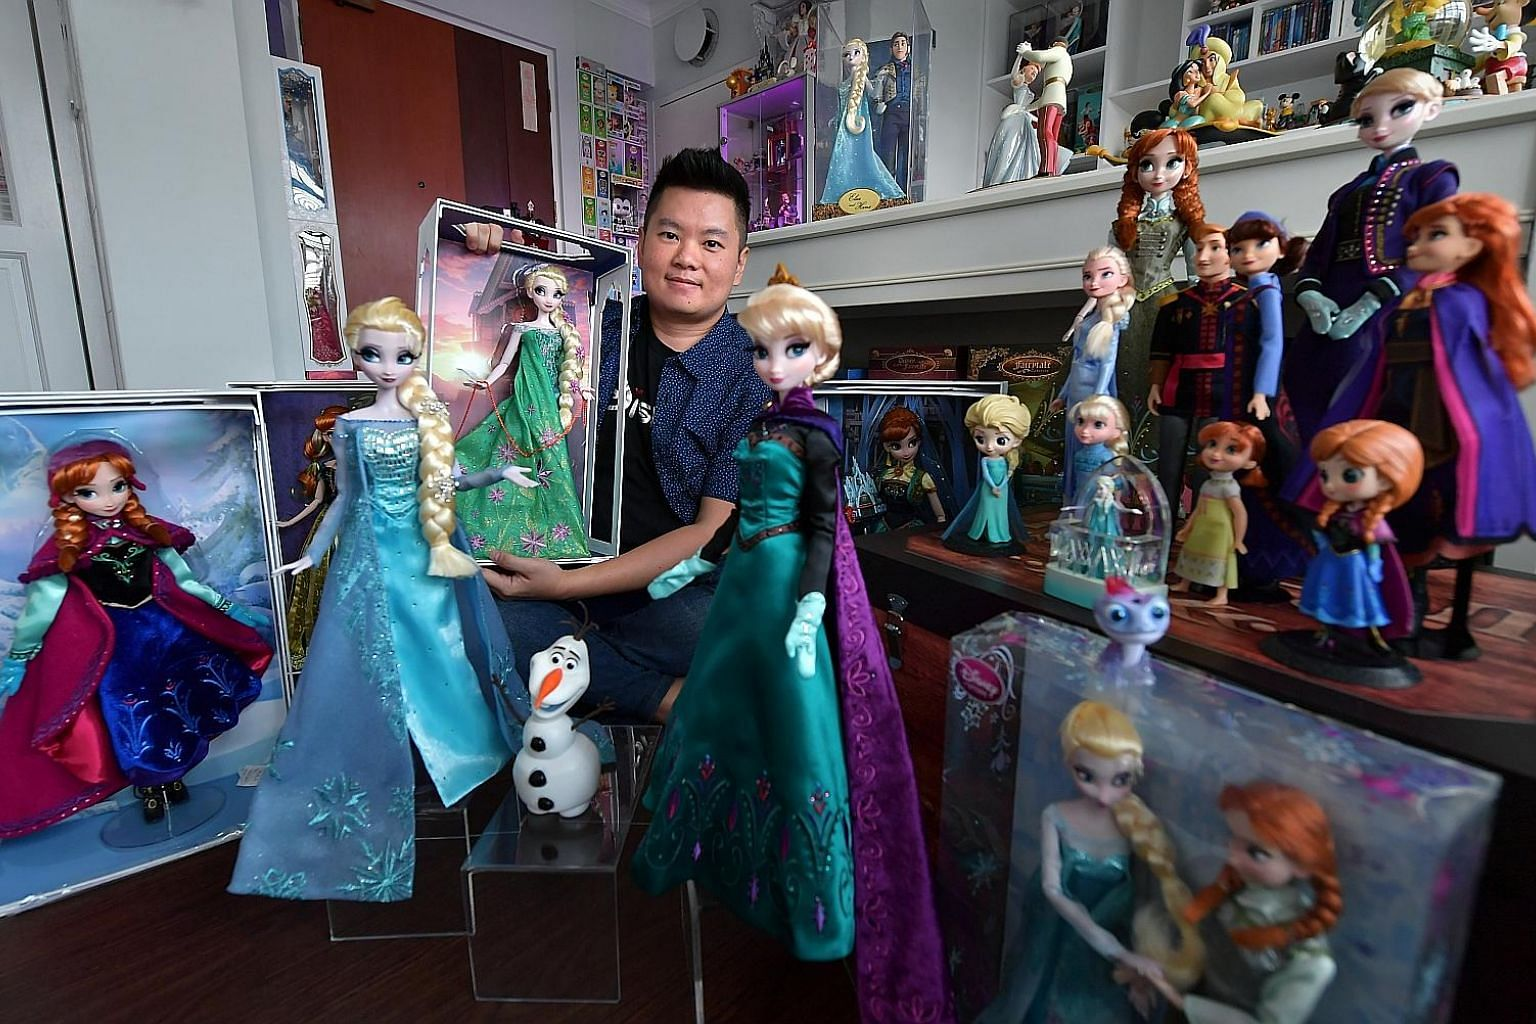 """Elsa Chia (third from far left) with her mother Lim Yue Wei (fourth from far left) and her cousin's family at toy retailer Toys """"R"""" Us' VivoCity branch for a Frozen 2 event recently. Graphic designer David Hilman has spent close to $6,000 on Frozen m"""